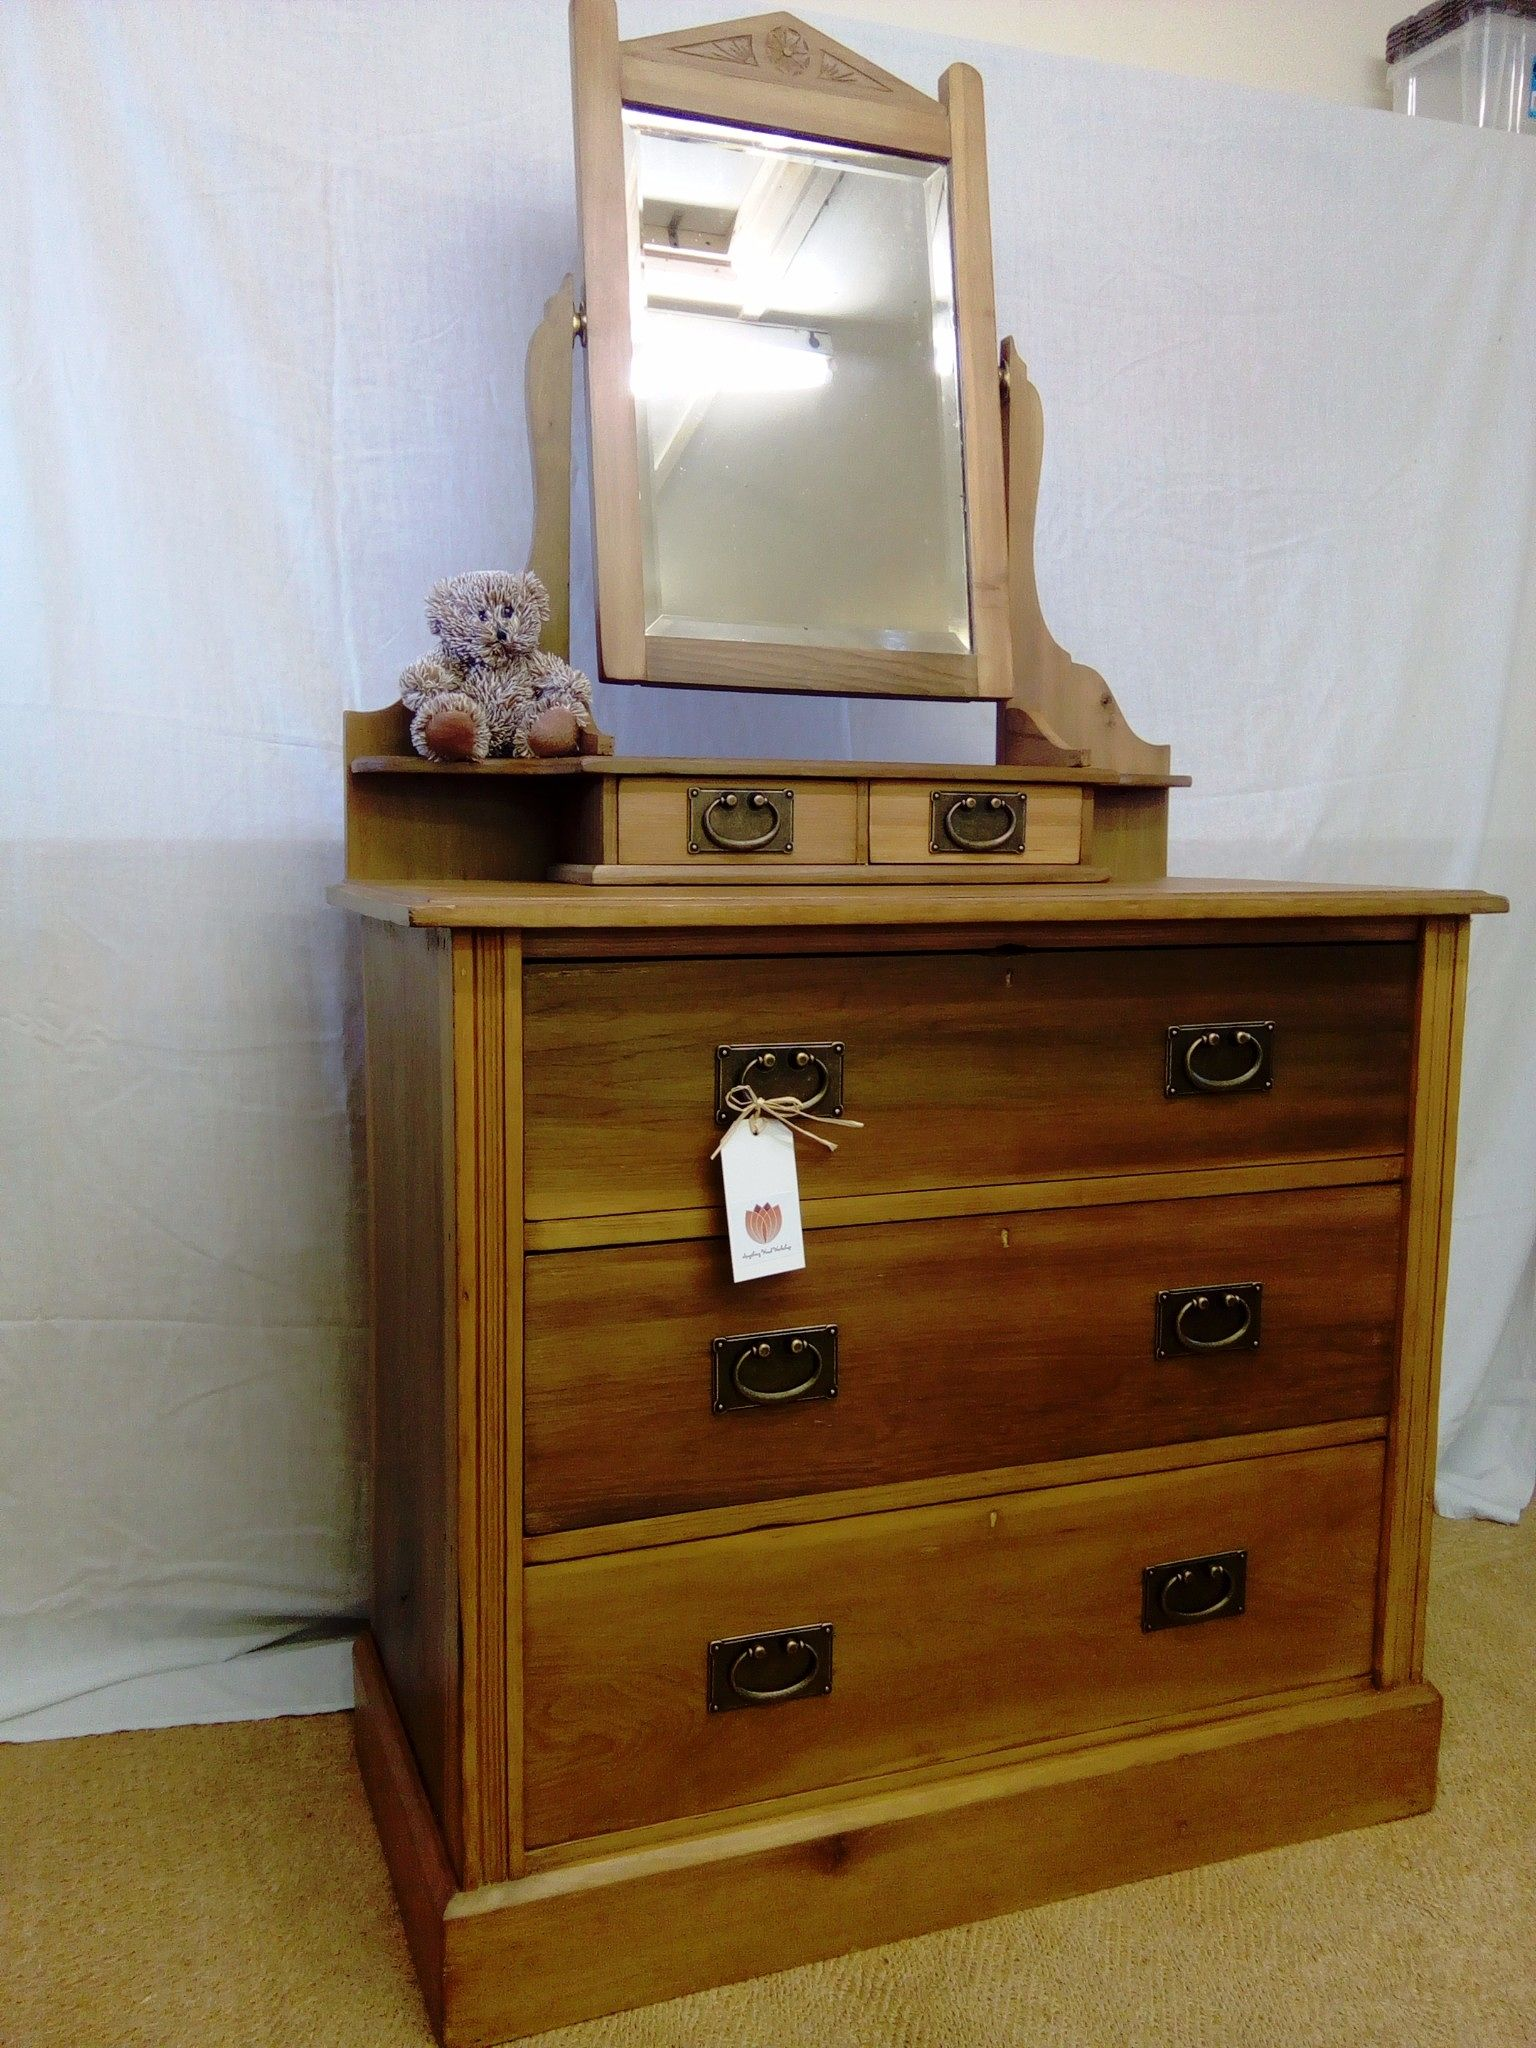 Dressing table victorian style chest of drawers with mirror